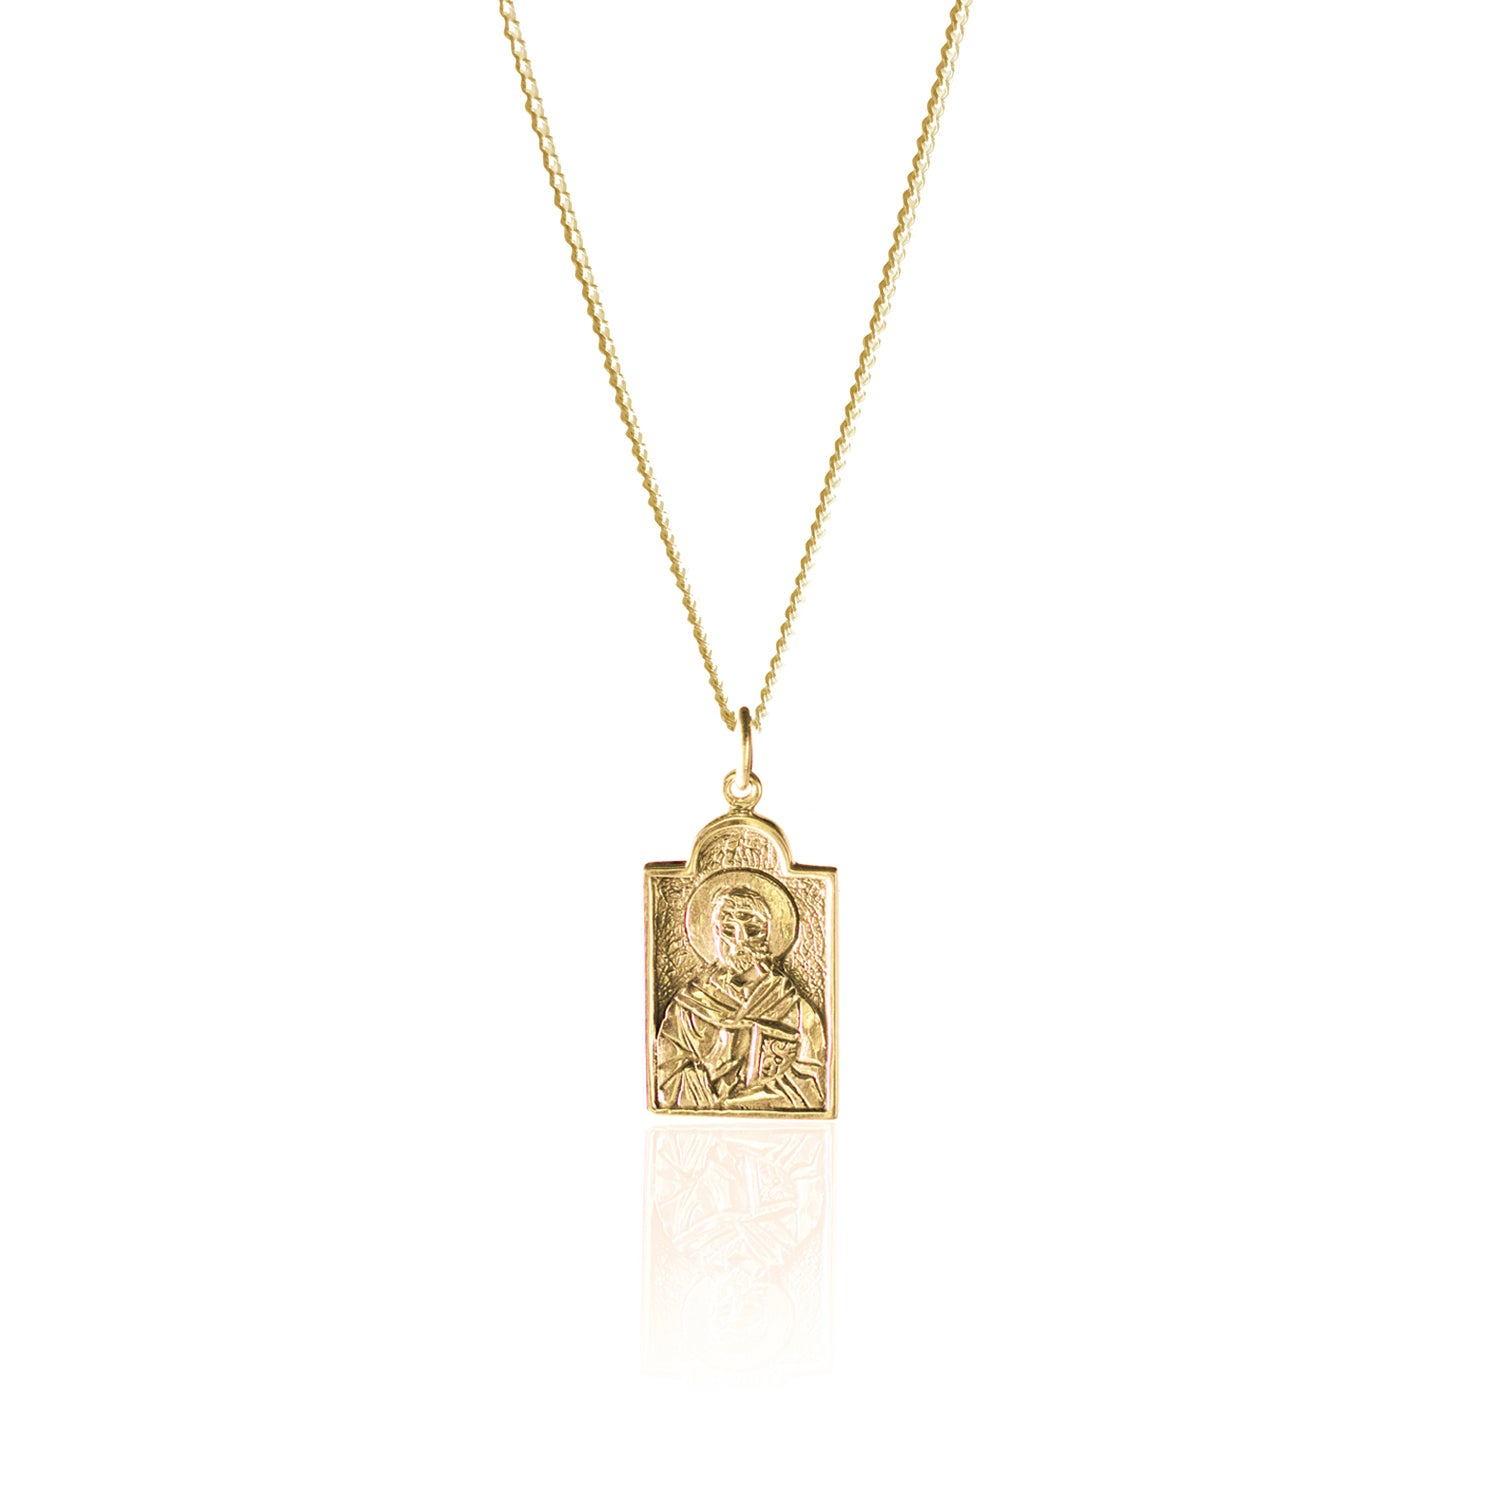 Solid 9kt Gold St Nicholas Saint of Children Pendant